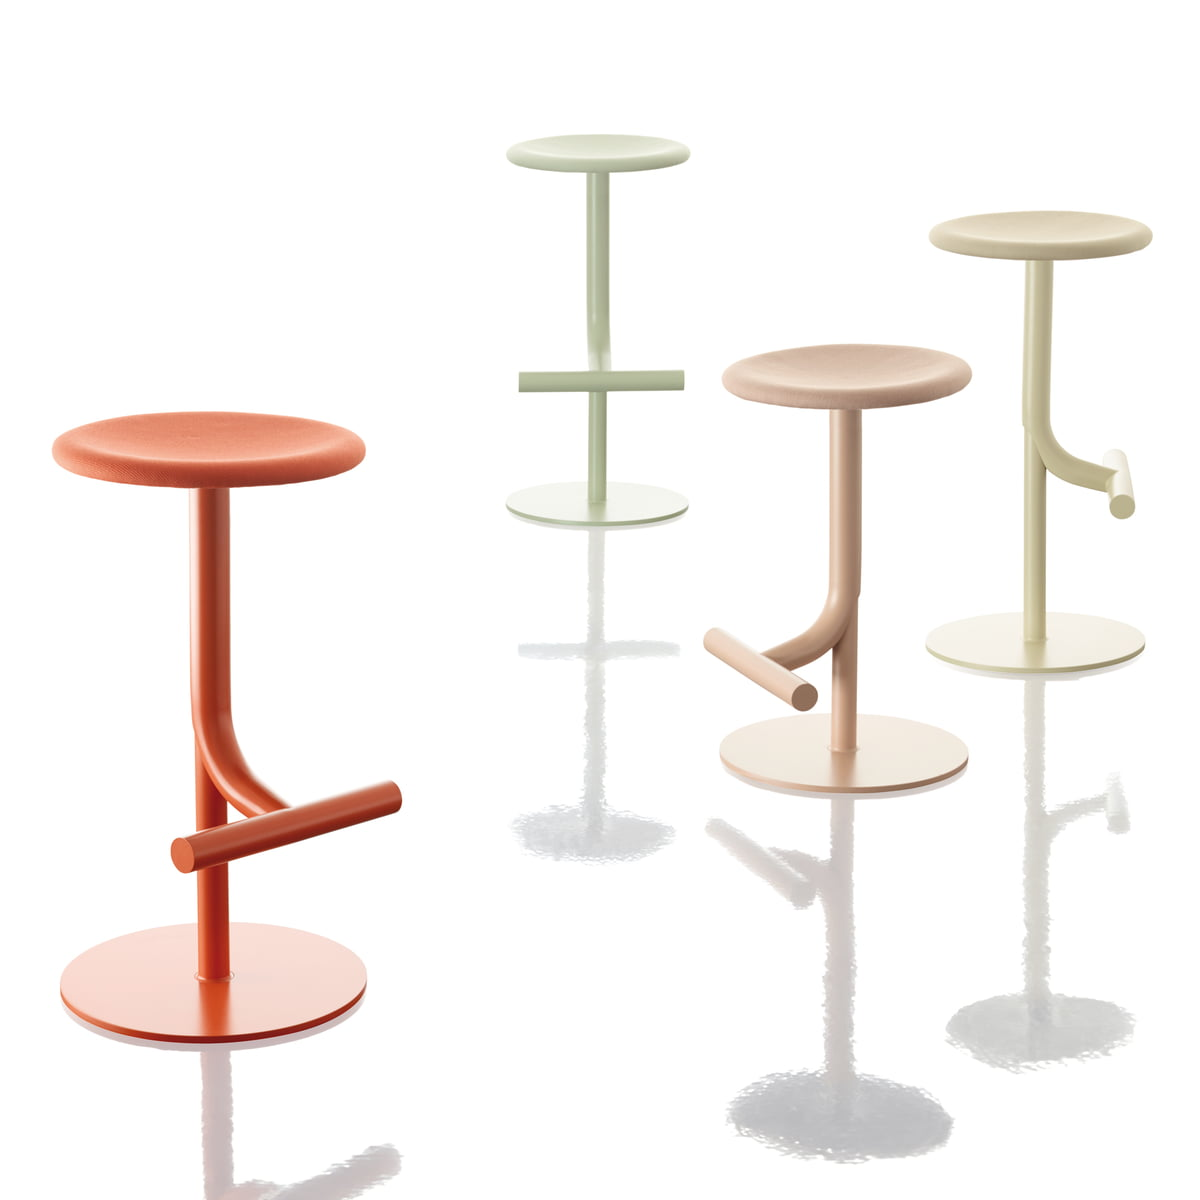 Magis tibu hocker im wohndesign shop for Magis bombo hocker